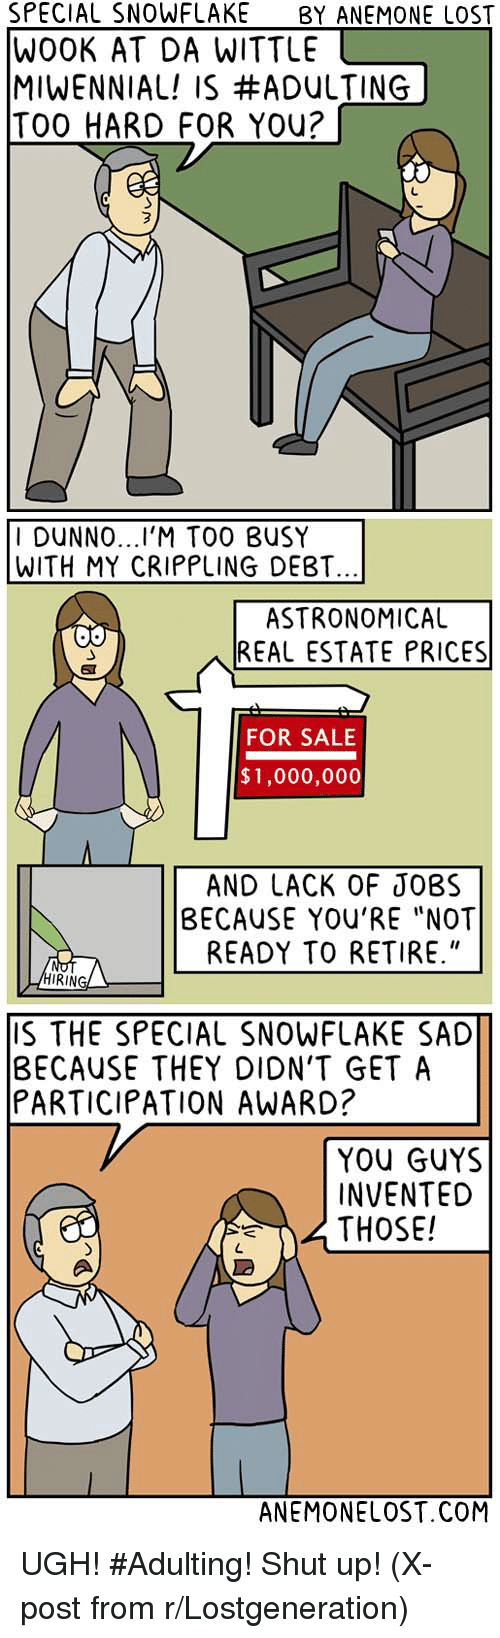 """Im 14 & This Is Deep: SPECIAL SNOWFLAKE  BY ANEMONE LOST  WOOK AT DA WITTLE  MIWENNIAL! IS #ADULTING  TOO HARD FOR You?  I DUNNO  TOO BUSY  WITH MY CRIPPLING DEBT.  ASTRONOMICAL  REAL ESTATE PRICES  FOR SALE  $1,000,000  AND LACK OF JOBS  BECAUSE YOU'RE """"NOT  READY TO RETIRE.""""  RING  S THE SPECIAL SNOWFLAKE SAD  BECAUSE THEY DION'T GET A  PARTICIPATION AWARD?  YOU GUYS  INVENTED  THOSE!  ANEMONELOST.COM UGH! #Adulting! Shut up! (X-post from r/Lostgeneration)"""